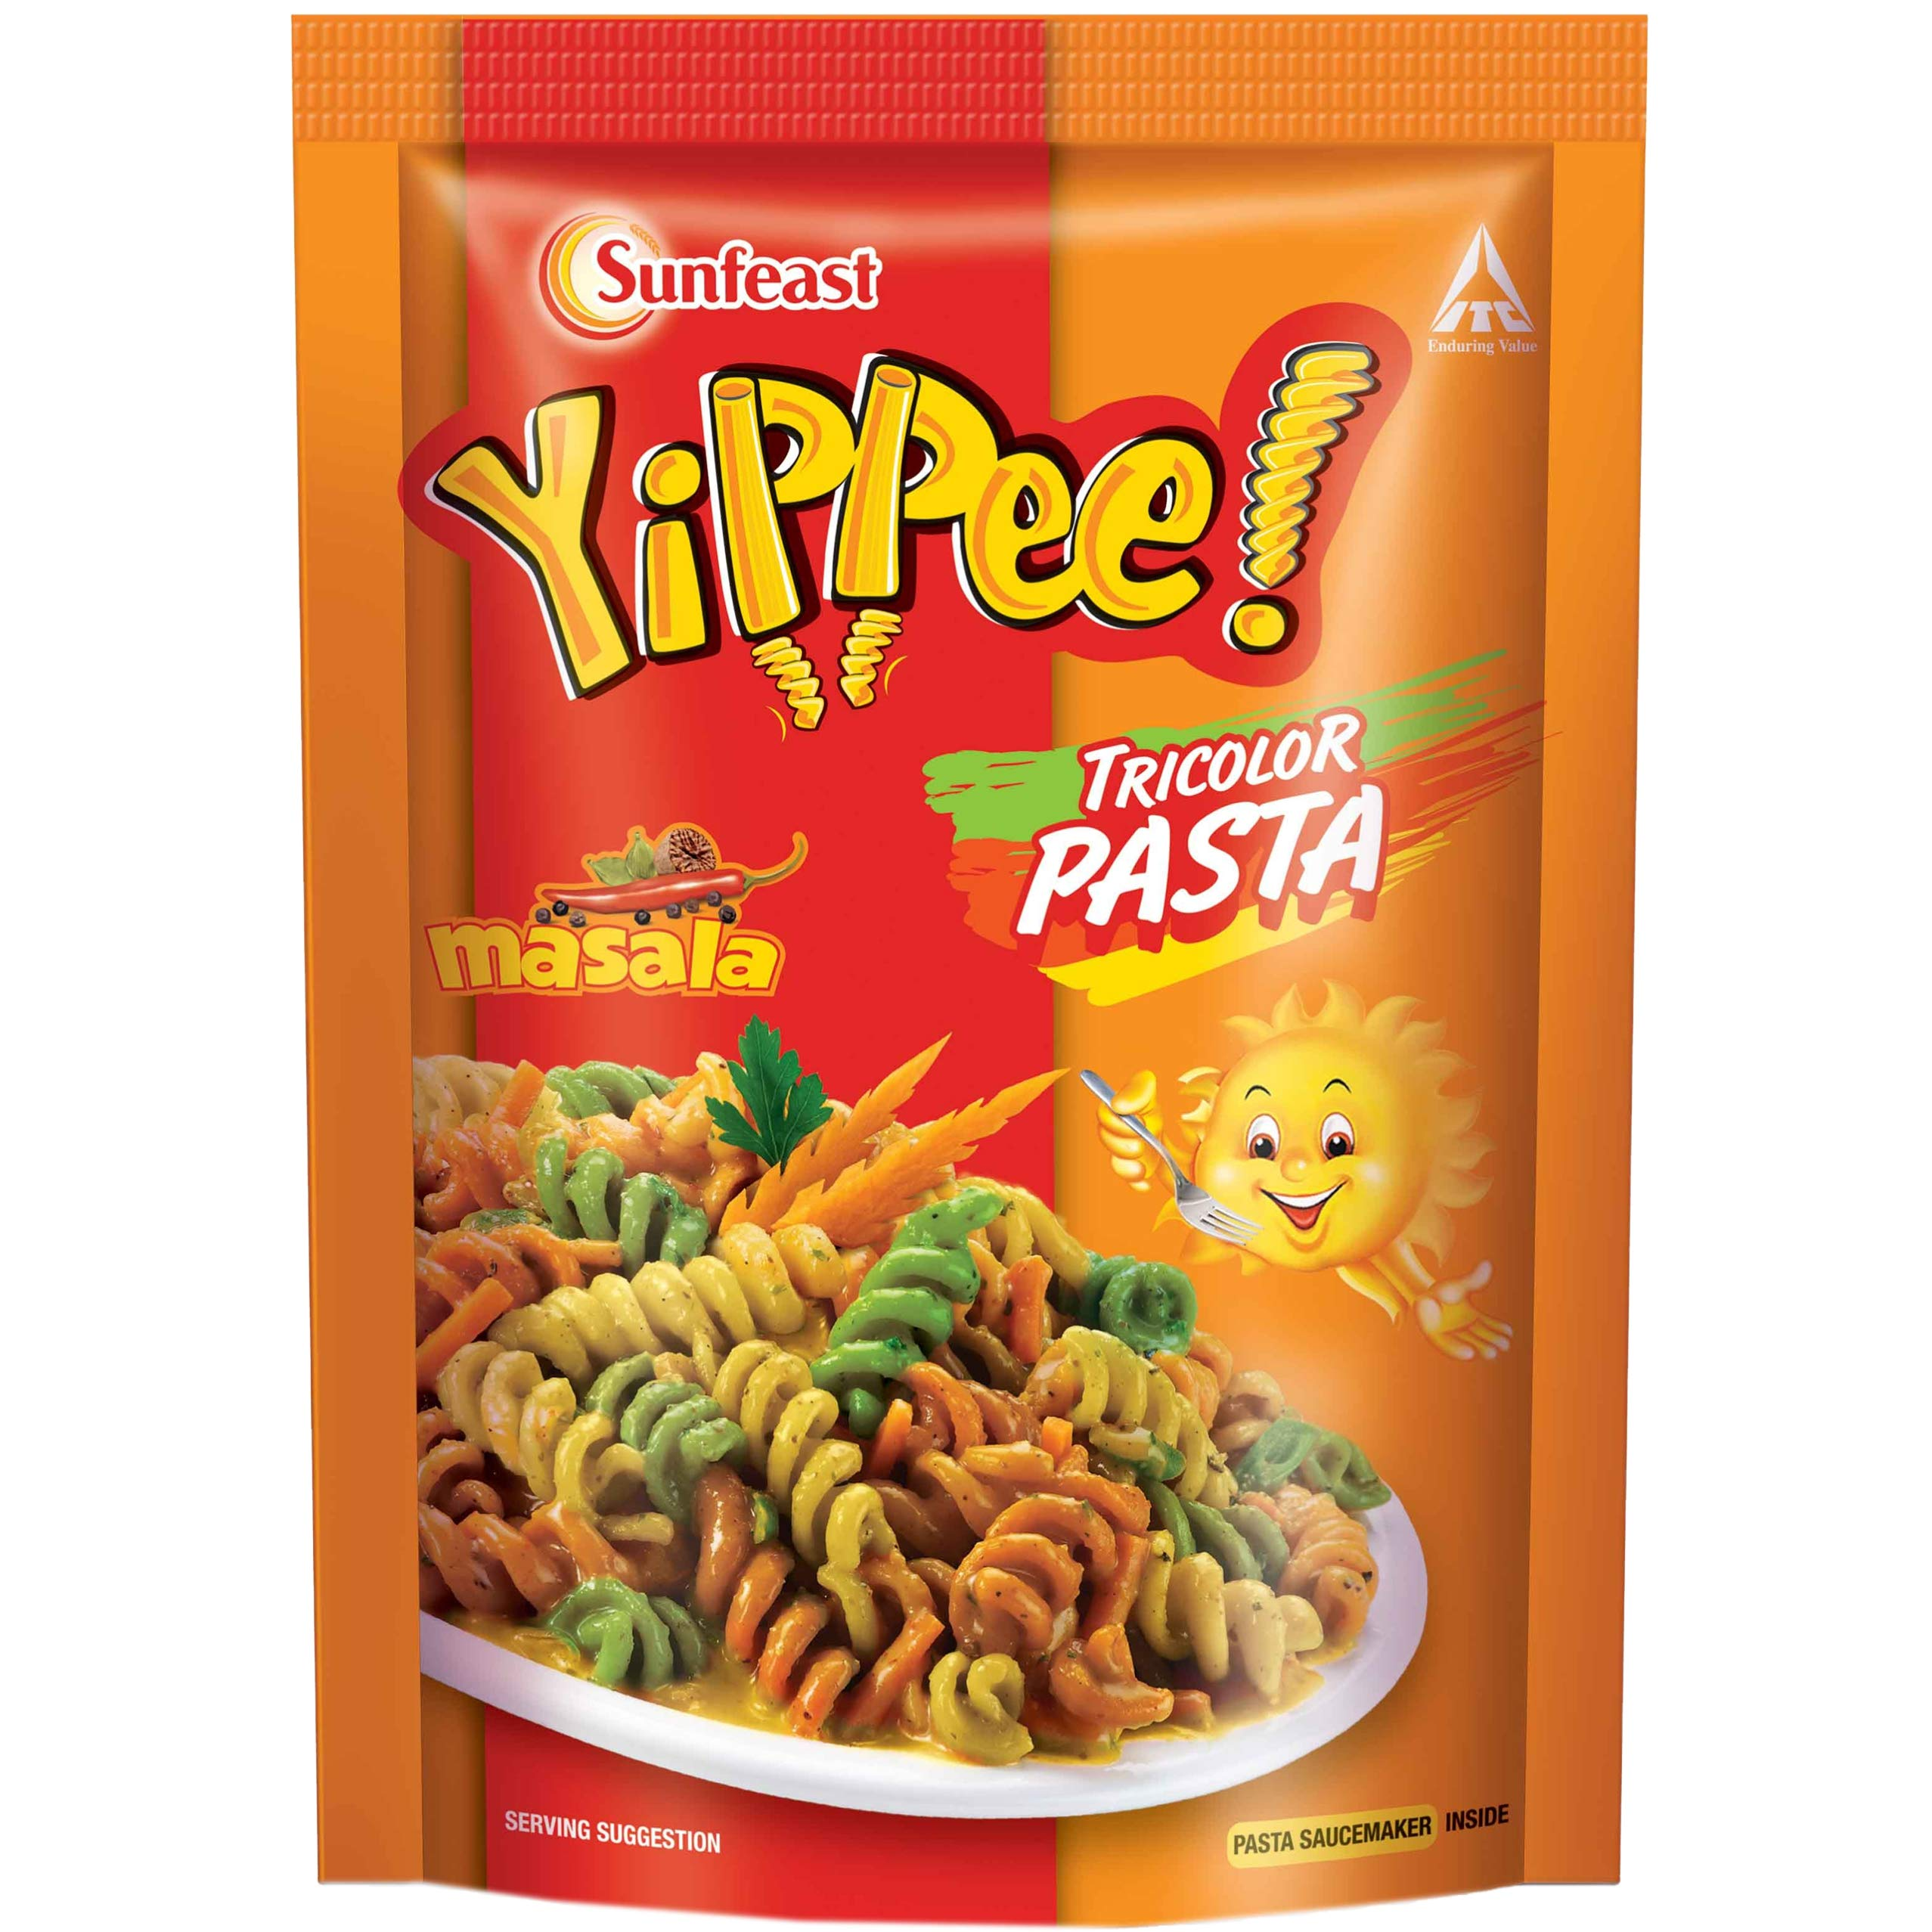 Sunfeast YiPPee! Tricolor Pasta | Masala |65g Pack